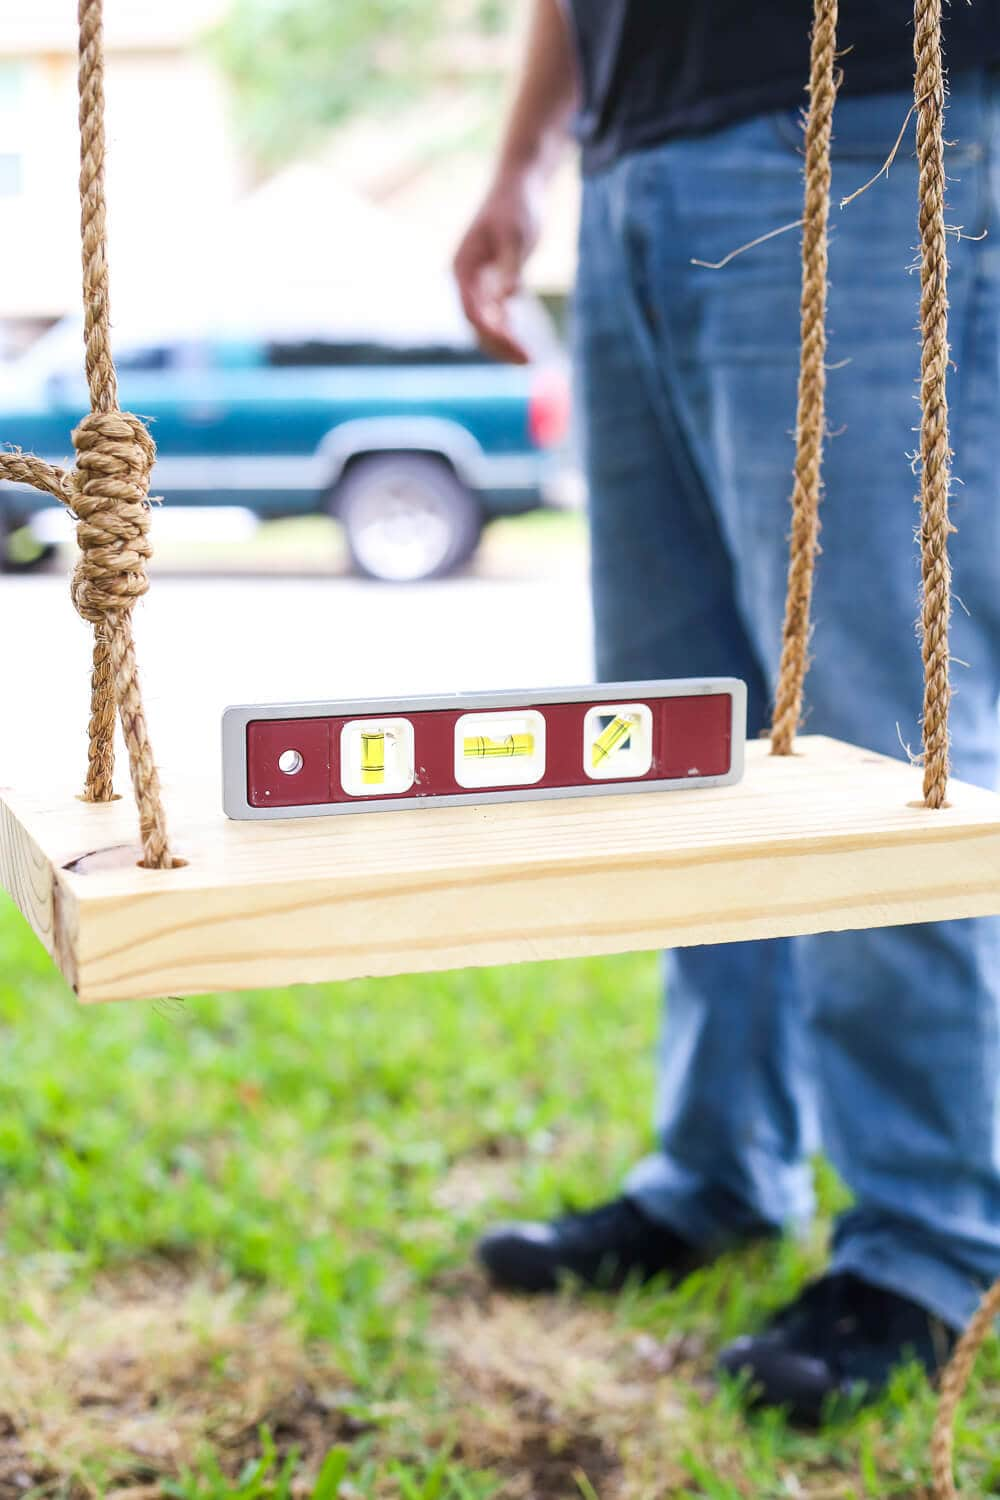 How to build a quick and simple wood tree swing for young kids - it costs about $10 and takes less than an hour to put together! Easy, affordable ideas for outdoor play.